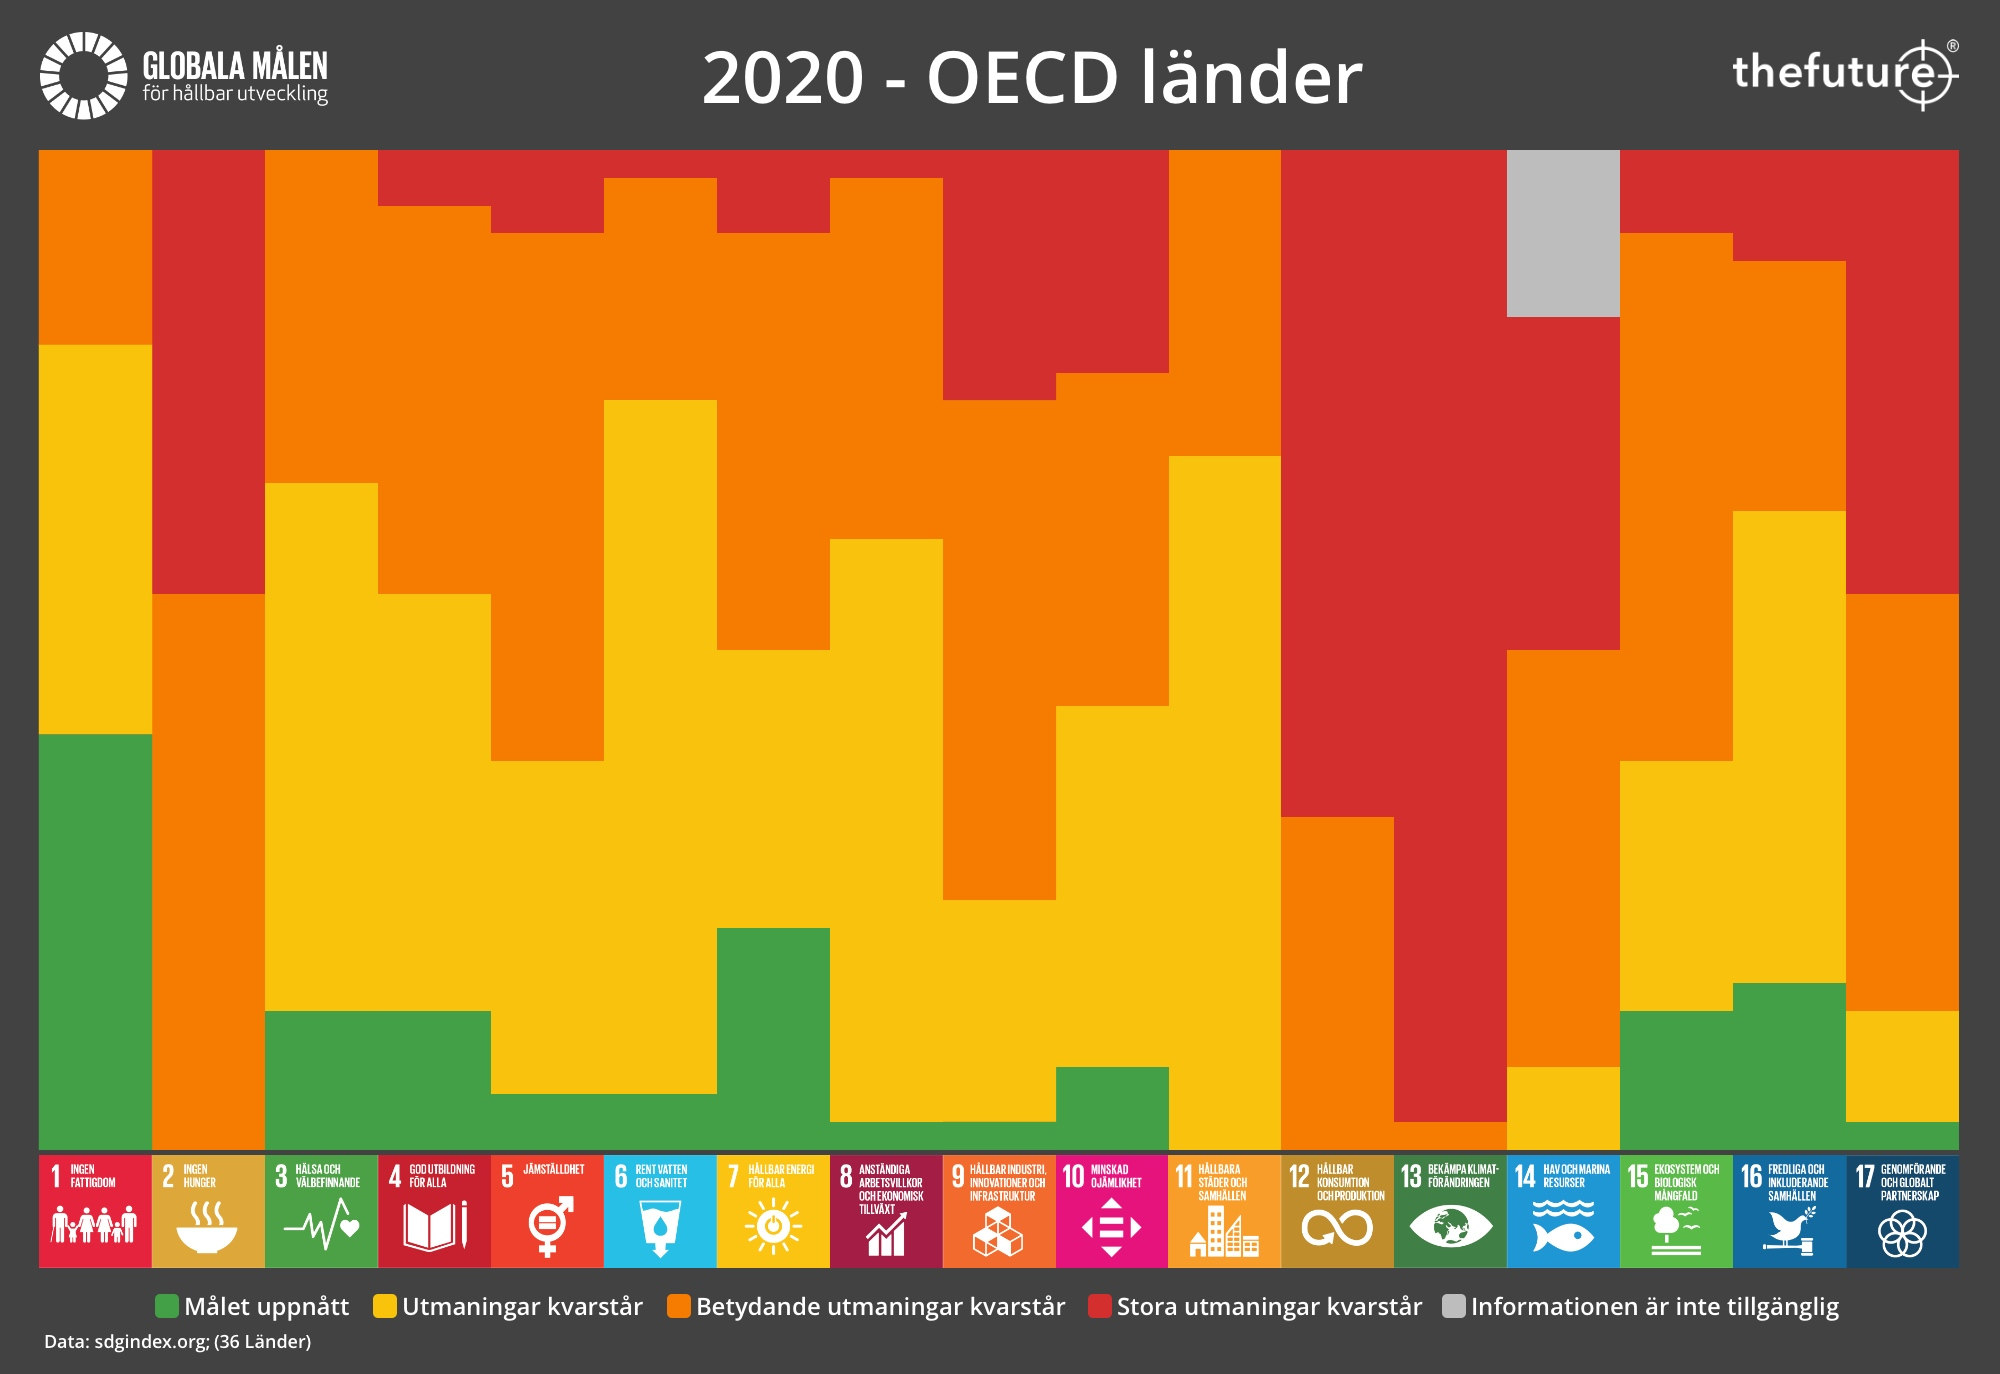 thefuture, blogg, SDG-Progress-2020-OECD